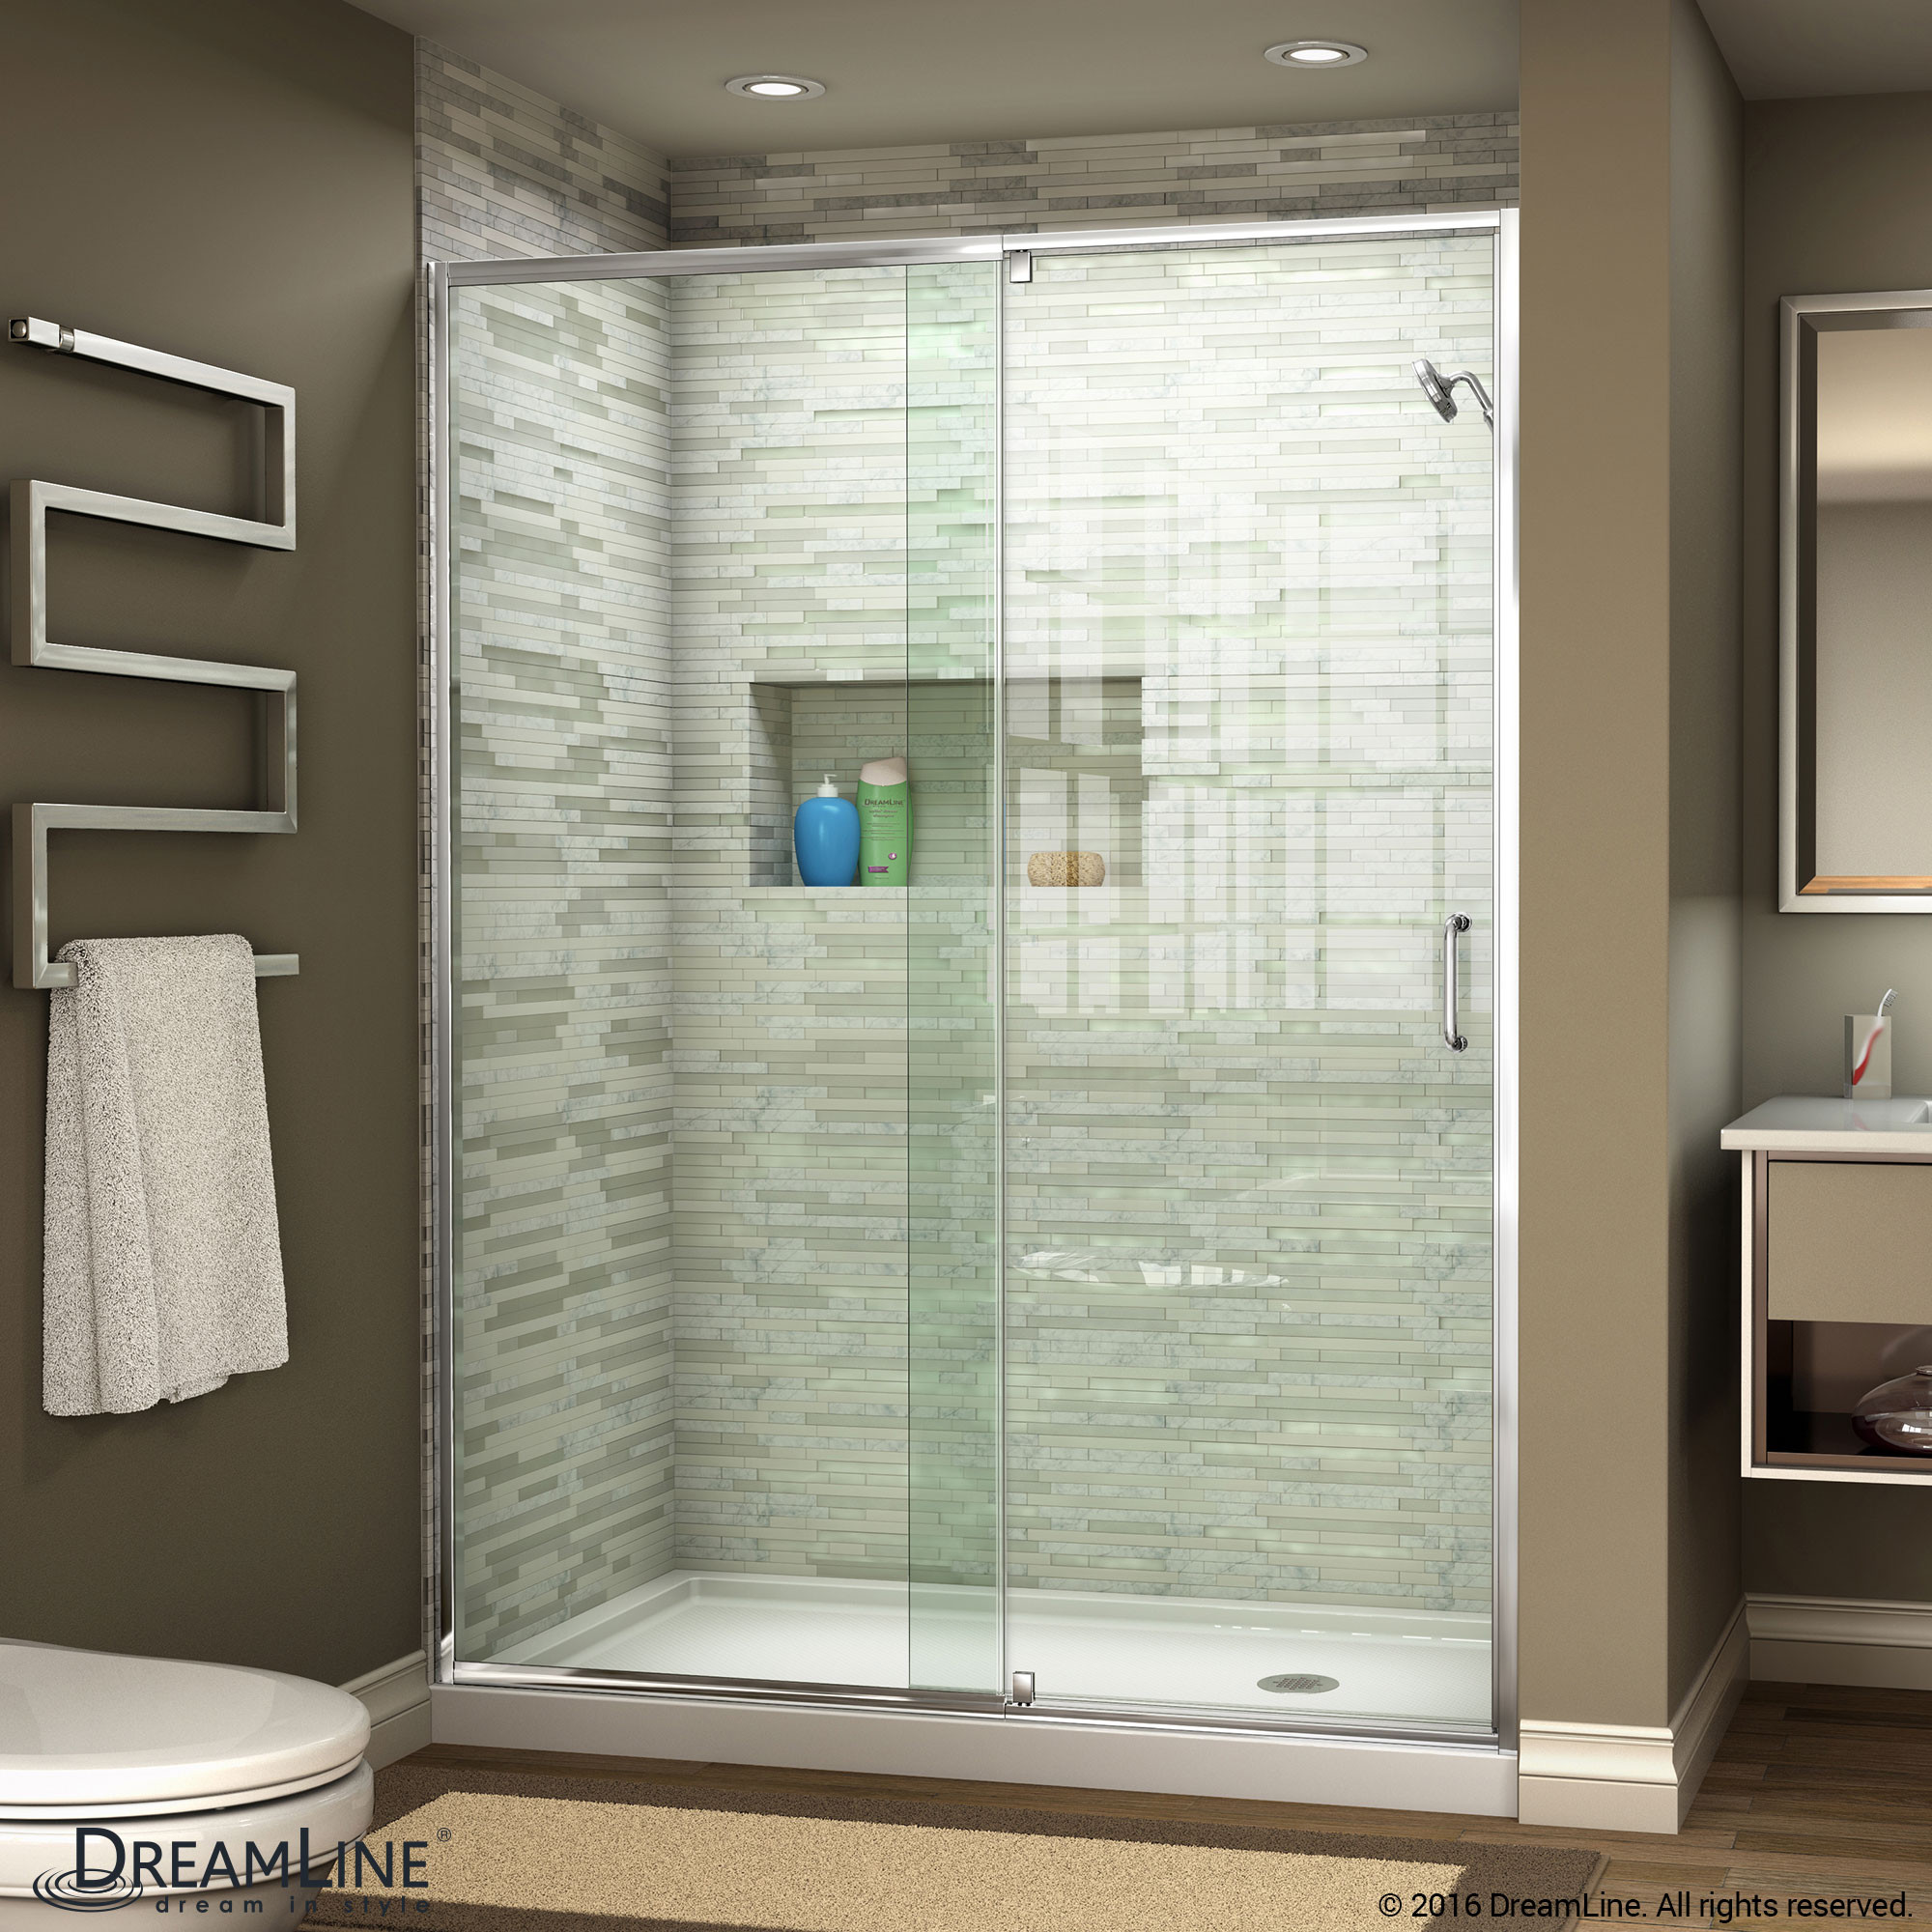 DreamLine SHDR-22607200-01 Flex 56 - 60 in. W x 72 in. H Pivot Shower Door in Chrome